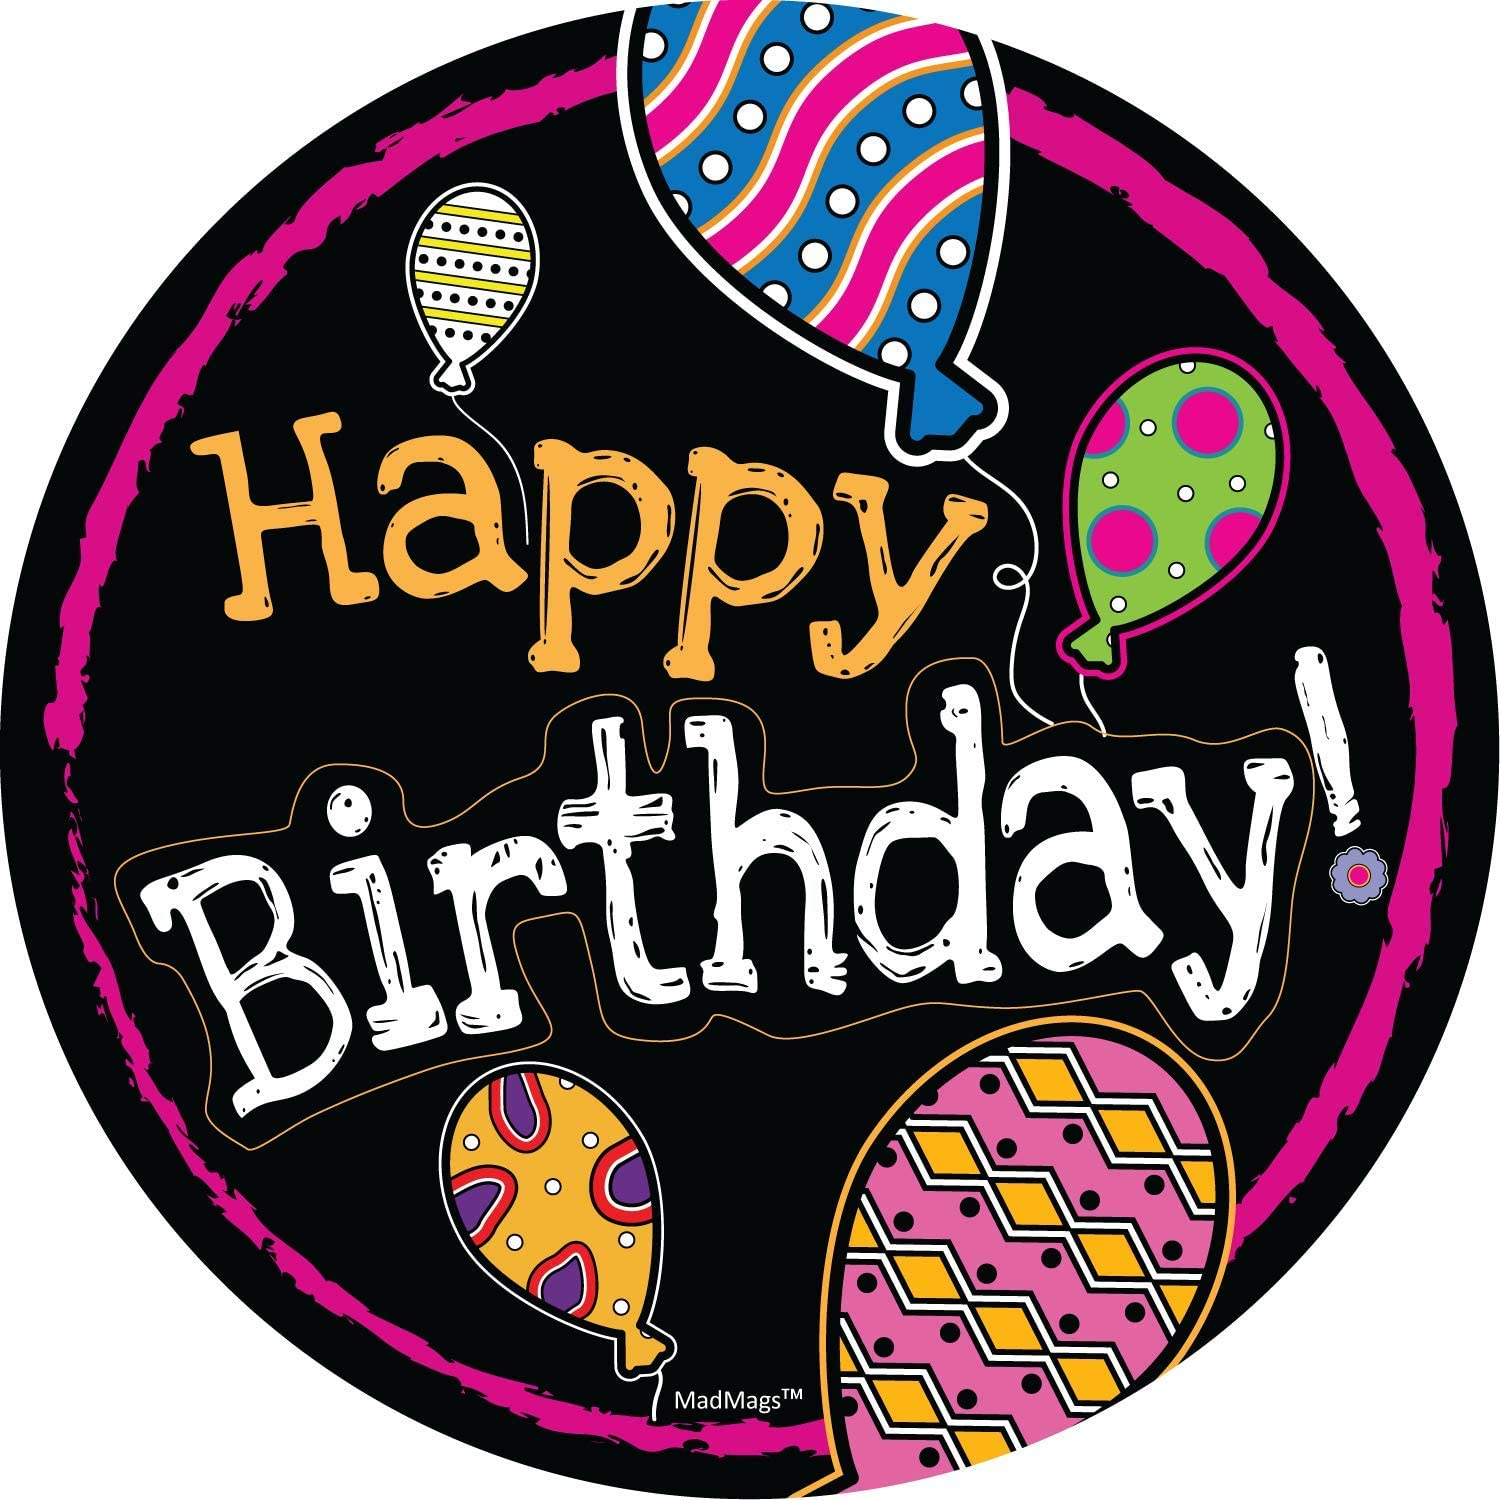 Car Magnet Happy Birthday Balloon Round White Magnetic Decal Sign for Car, Office or Fridge, 5.5 Inches (Black Balloon)